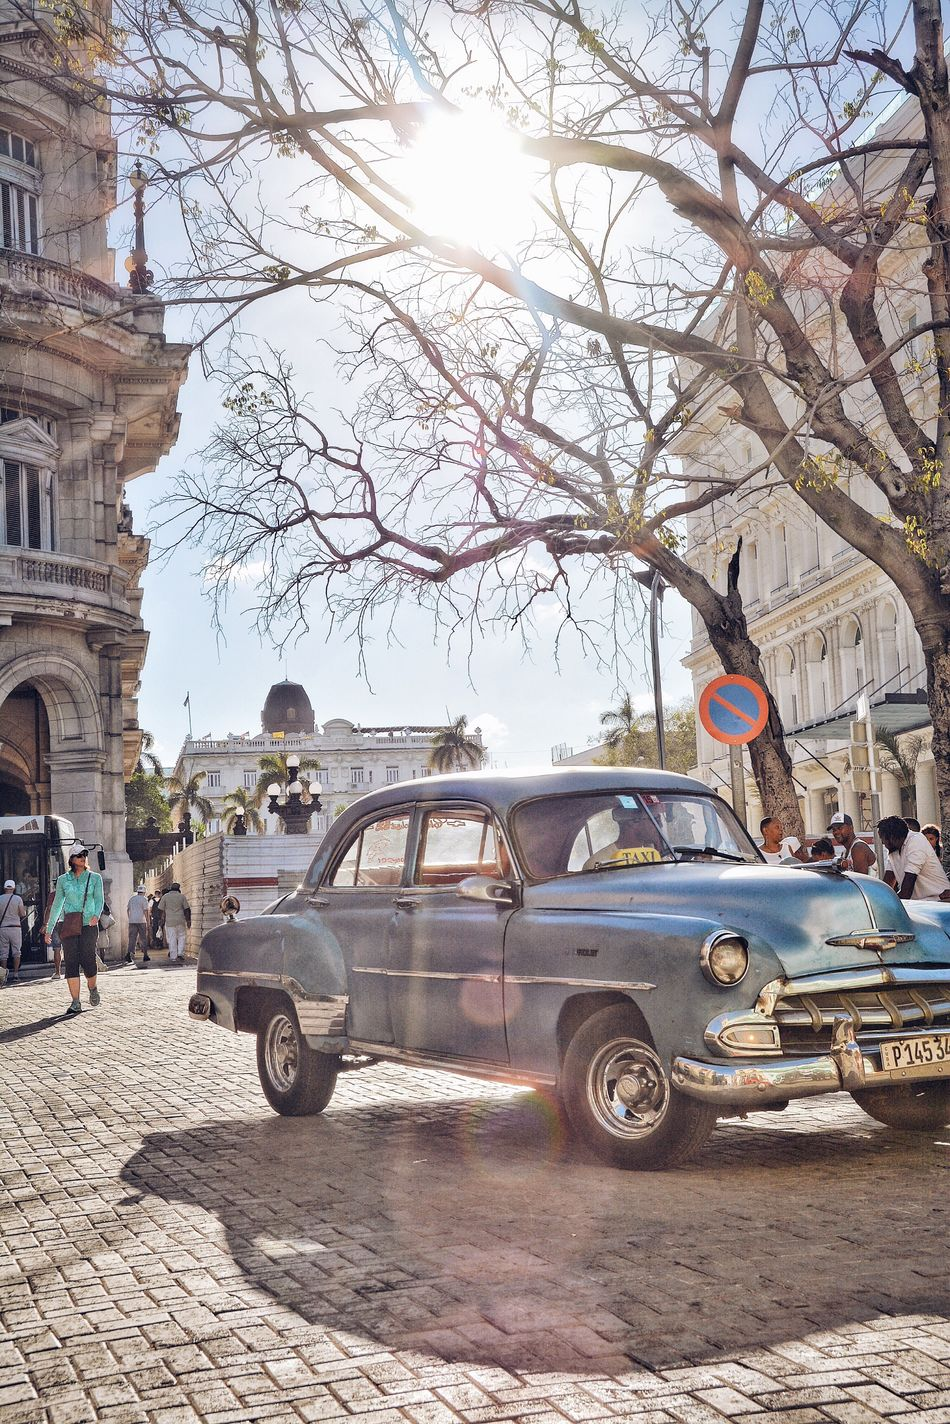 Cuba, where taxis are colorful 1950s' Chevys. Car Transportation Street City Mode Of Transport Sunlight Architecture Outdoors Land Vehicle Vintage Cars Vintage Streetphotography City Life Chevrolet Chevy Old School 50's Style Back In Time 1950s